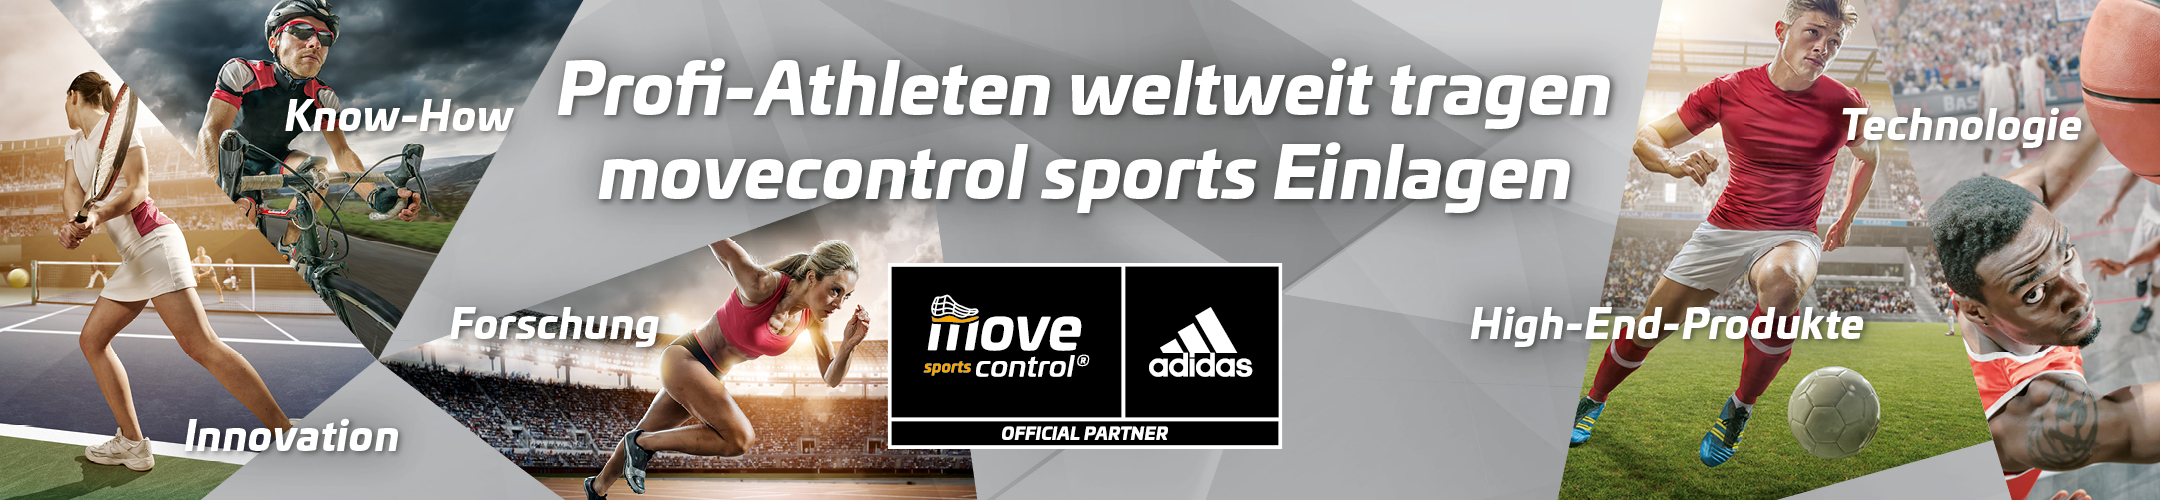 Bausteine_IT_Web_MCsports_adidas2